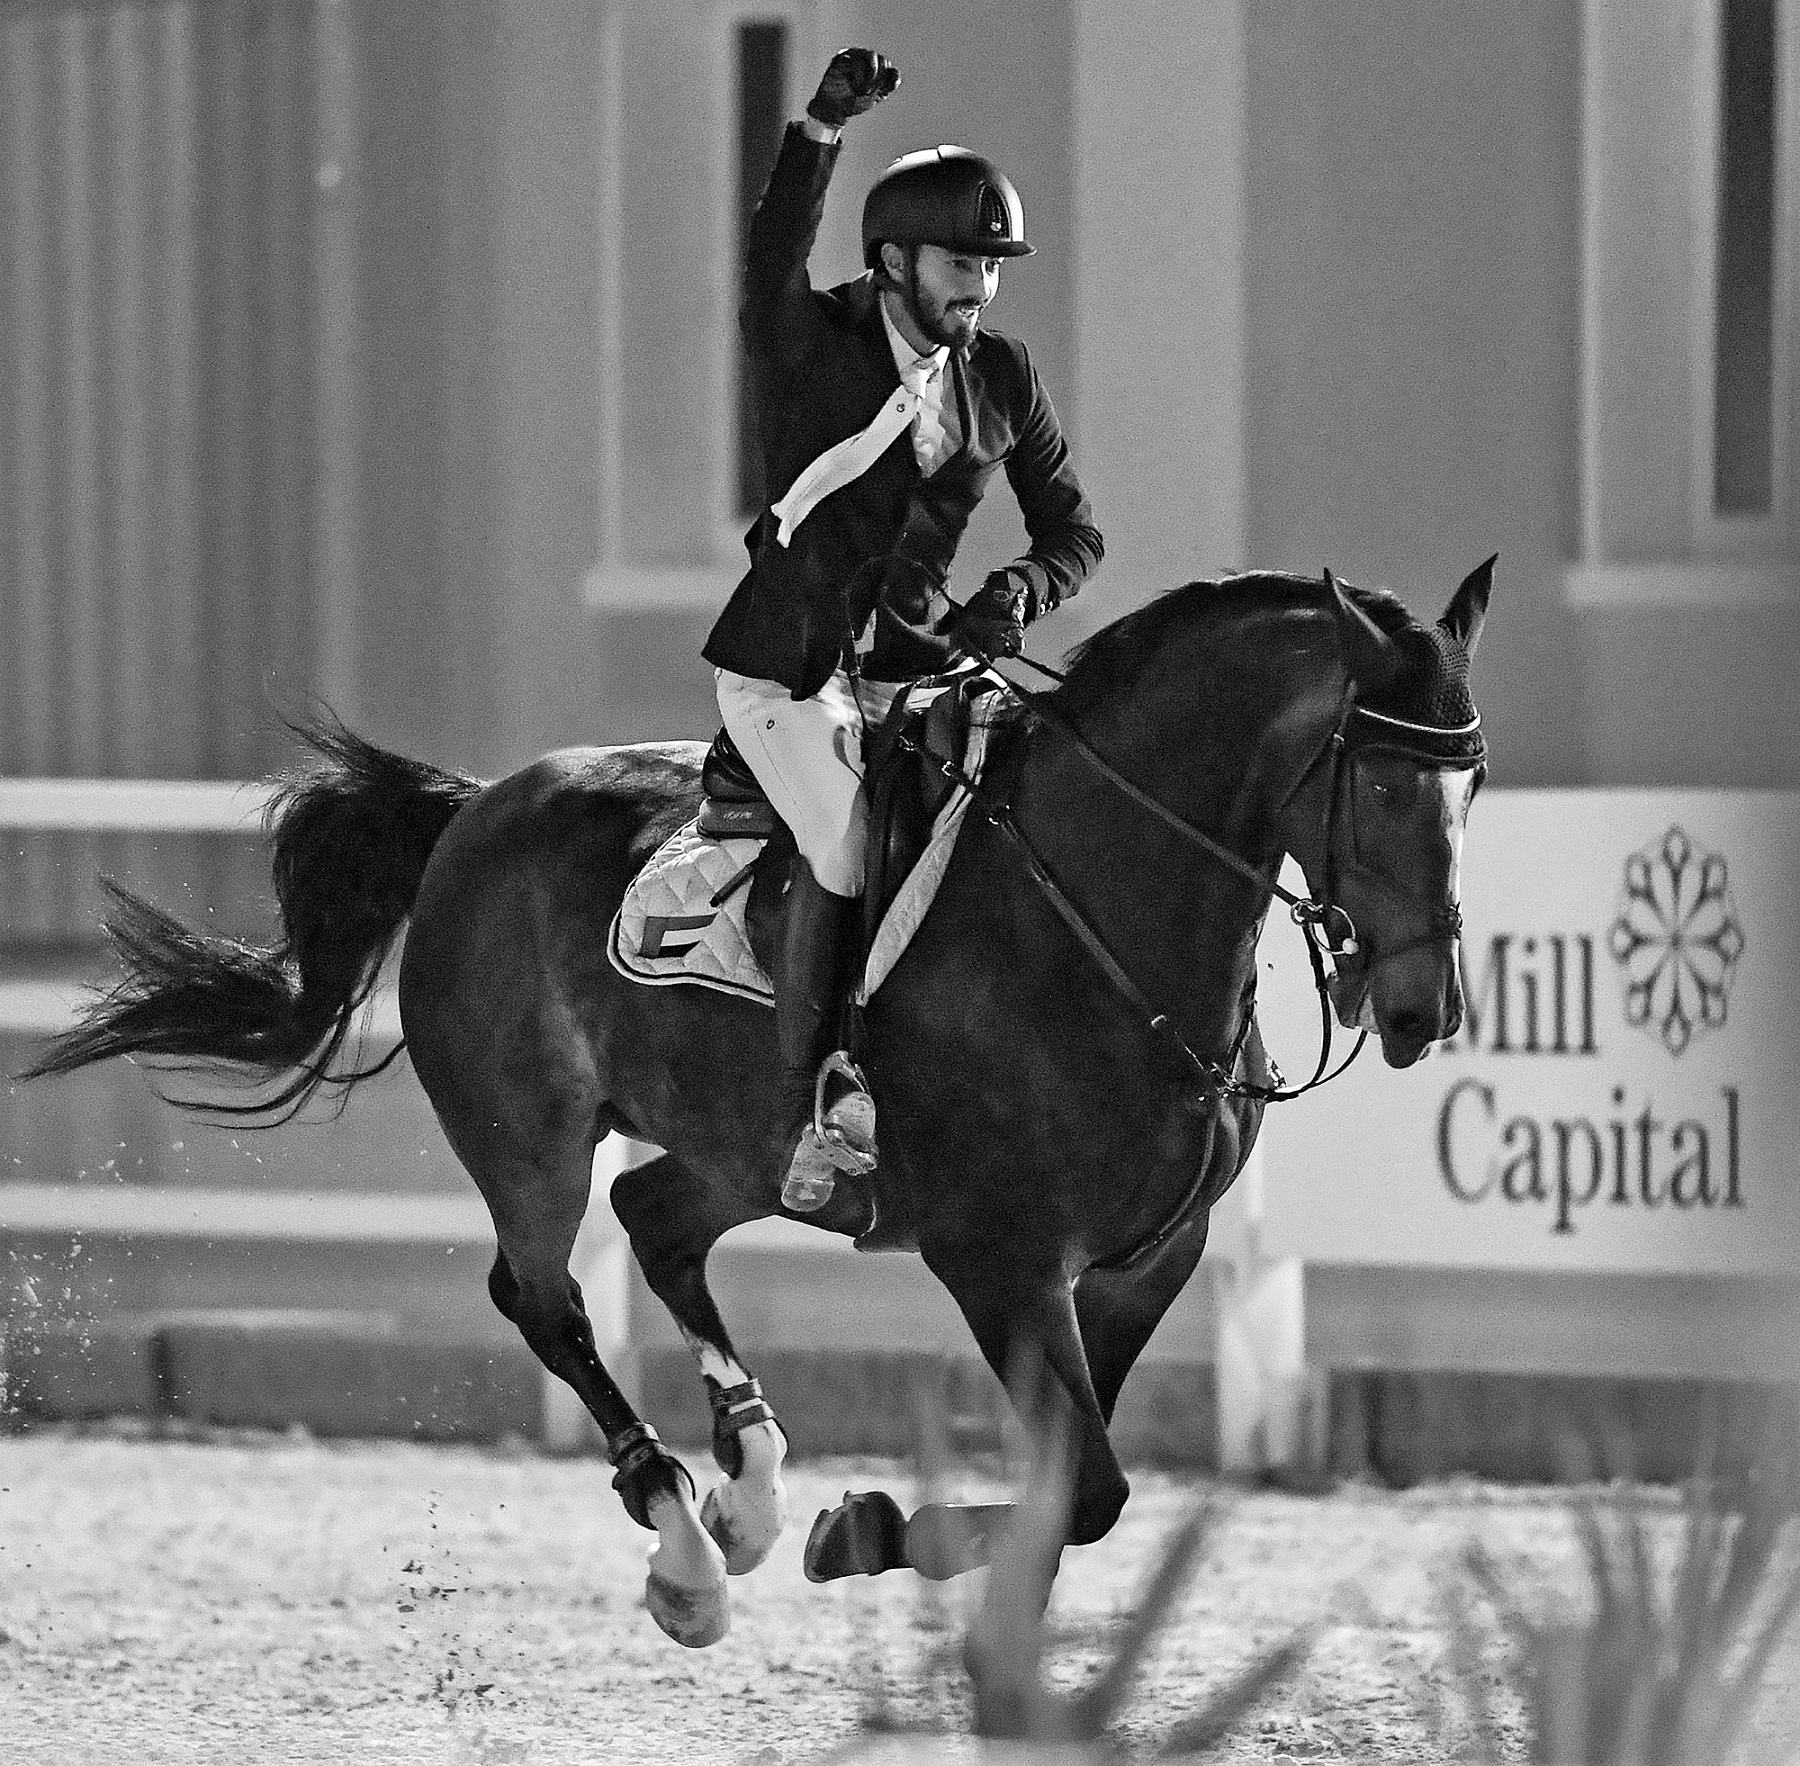 Horse Times Egypt: Equestrian Magazine :News :Riders from Sharjah Equestrian & Racing Club win the titles for both Medium and Big Tour classes at the third round of The Gulf Elite Tour